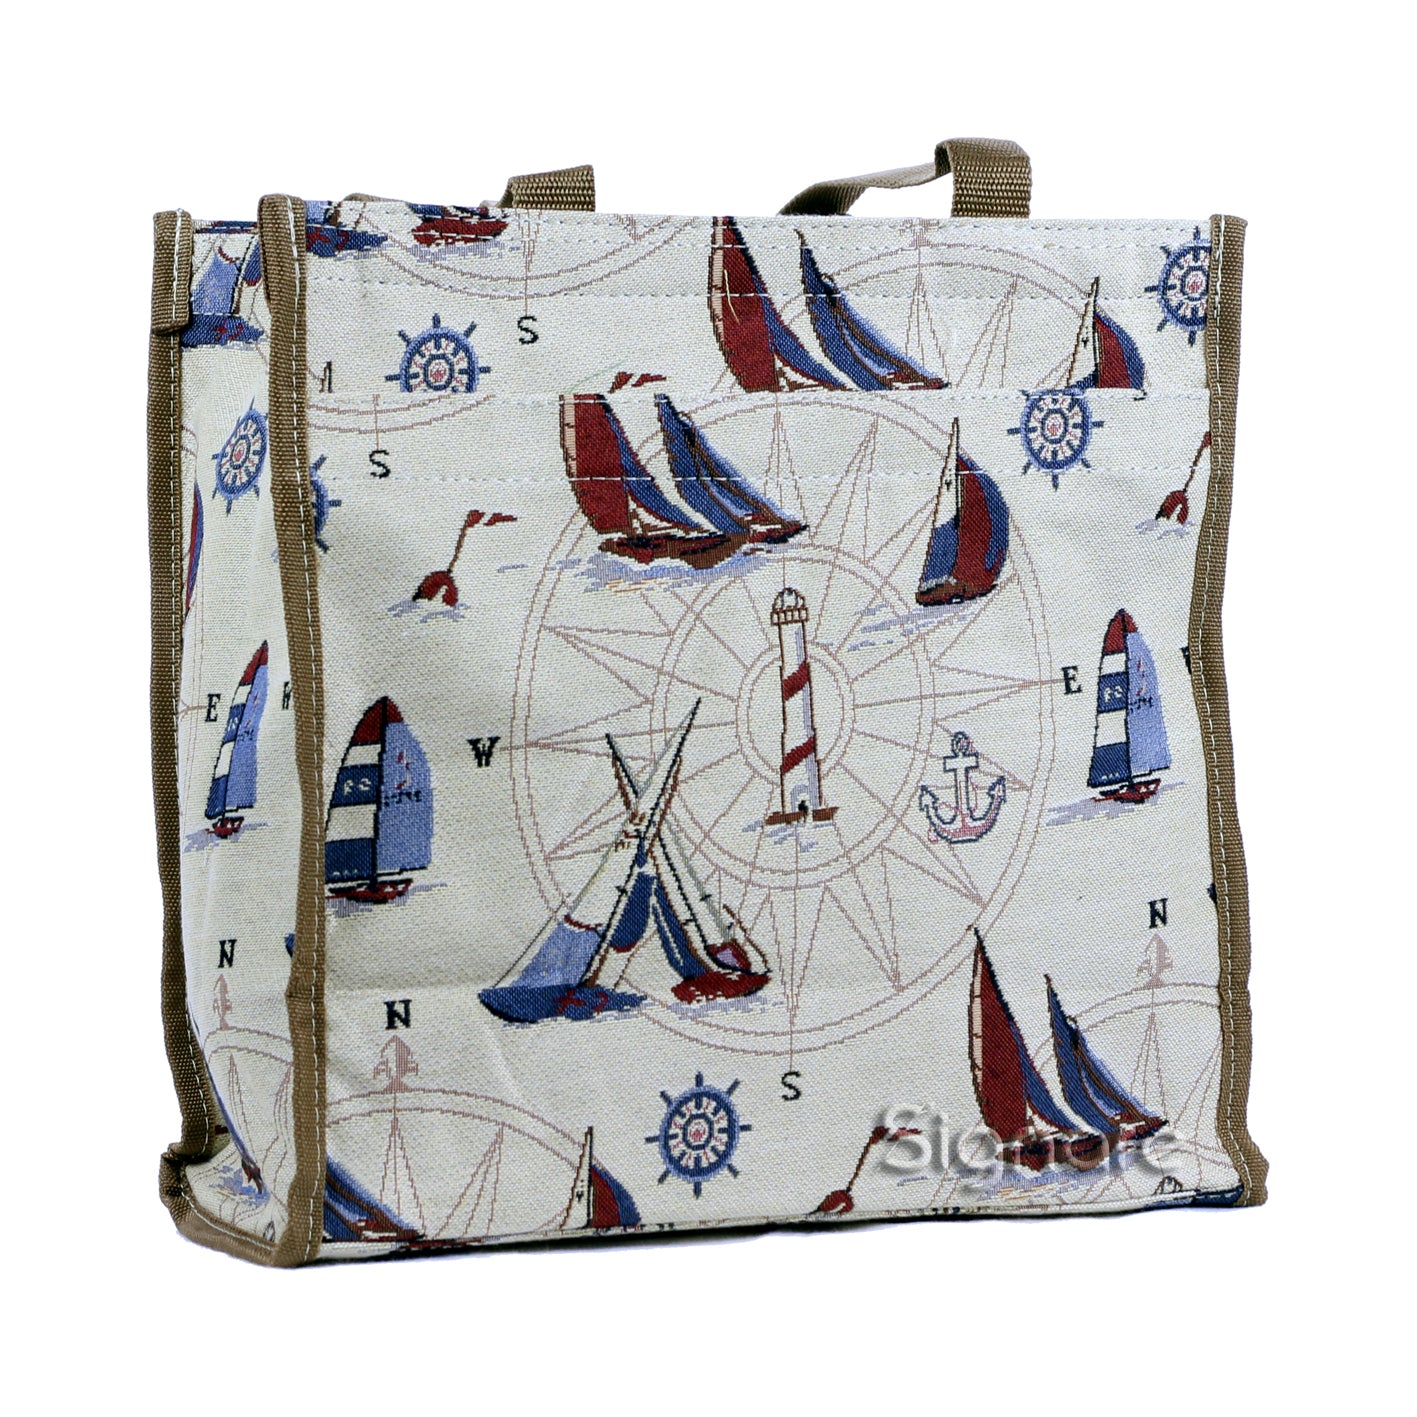 SHOP-YAC | YACHT SHOPPER BAG - www.signareusa.com